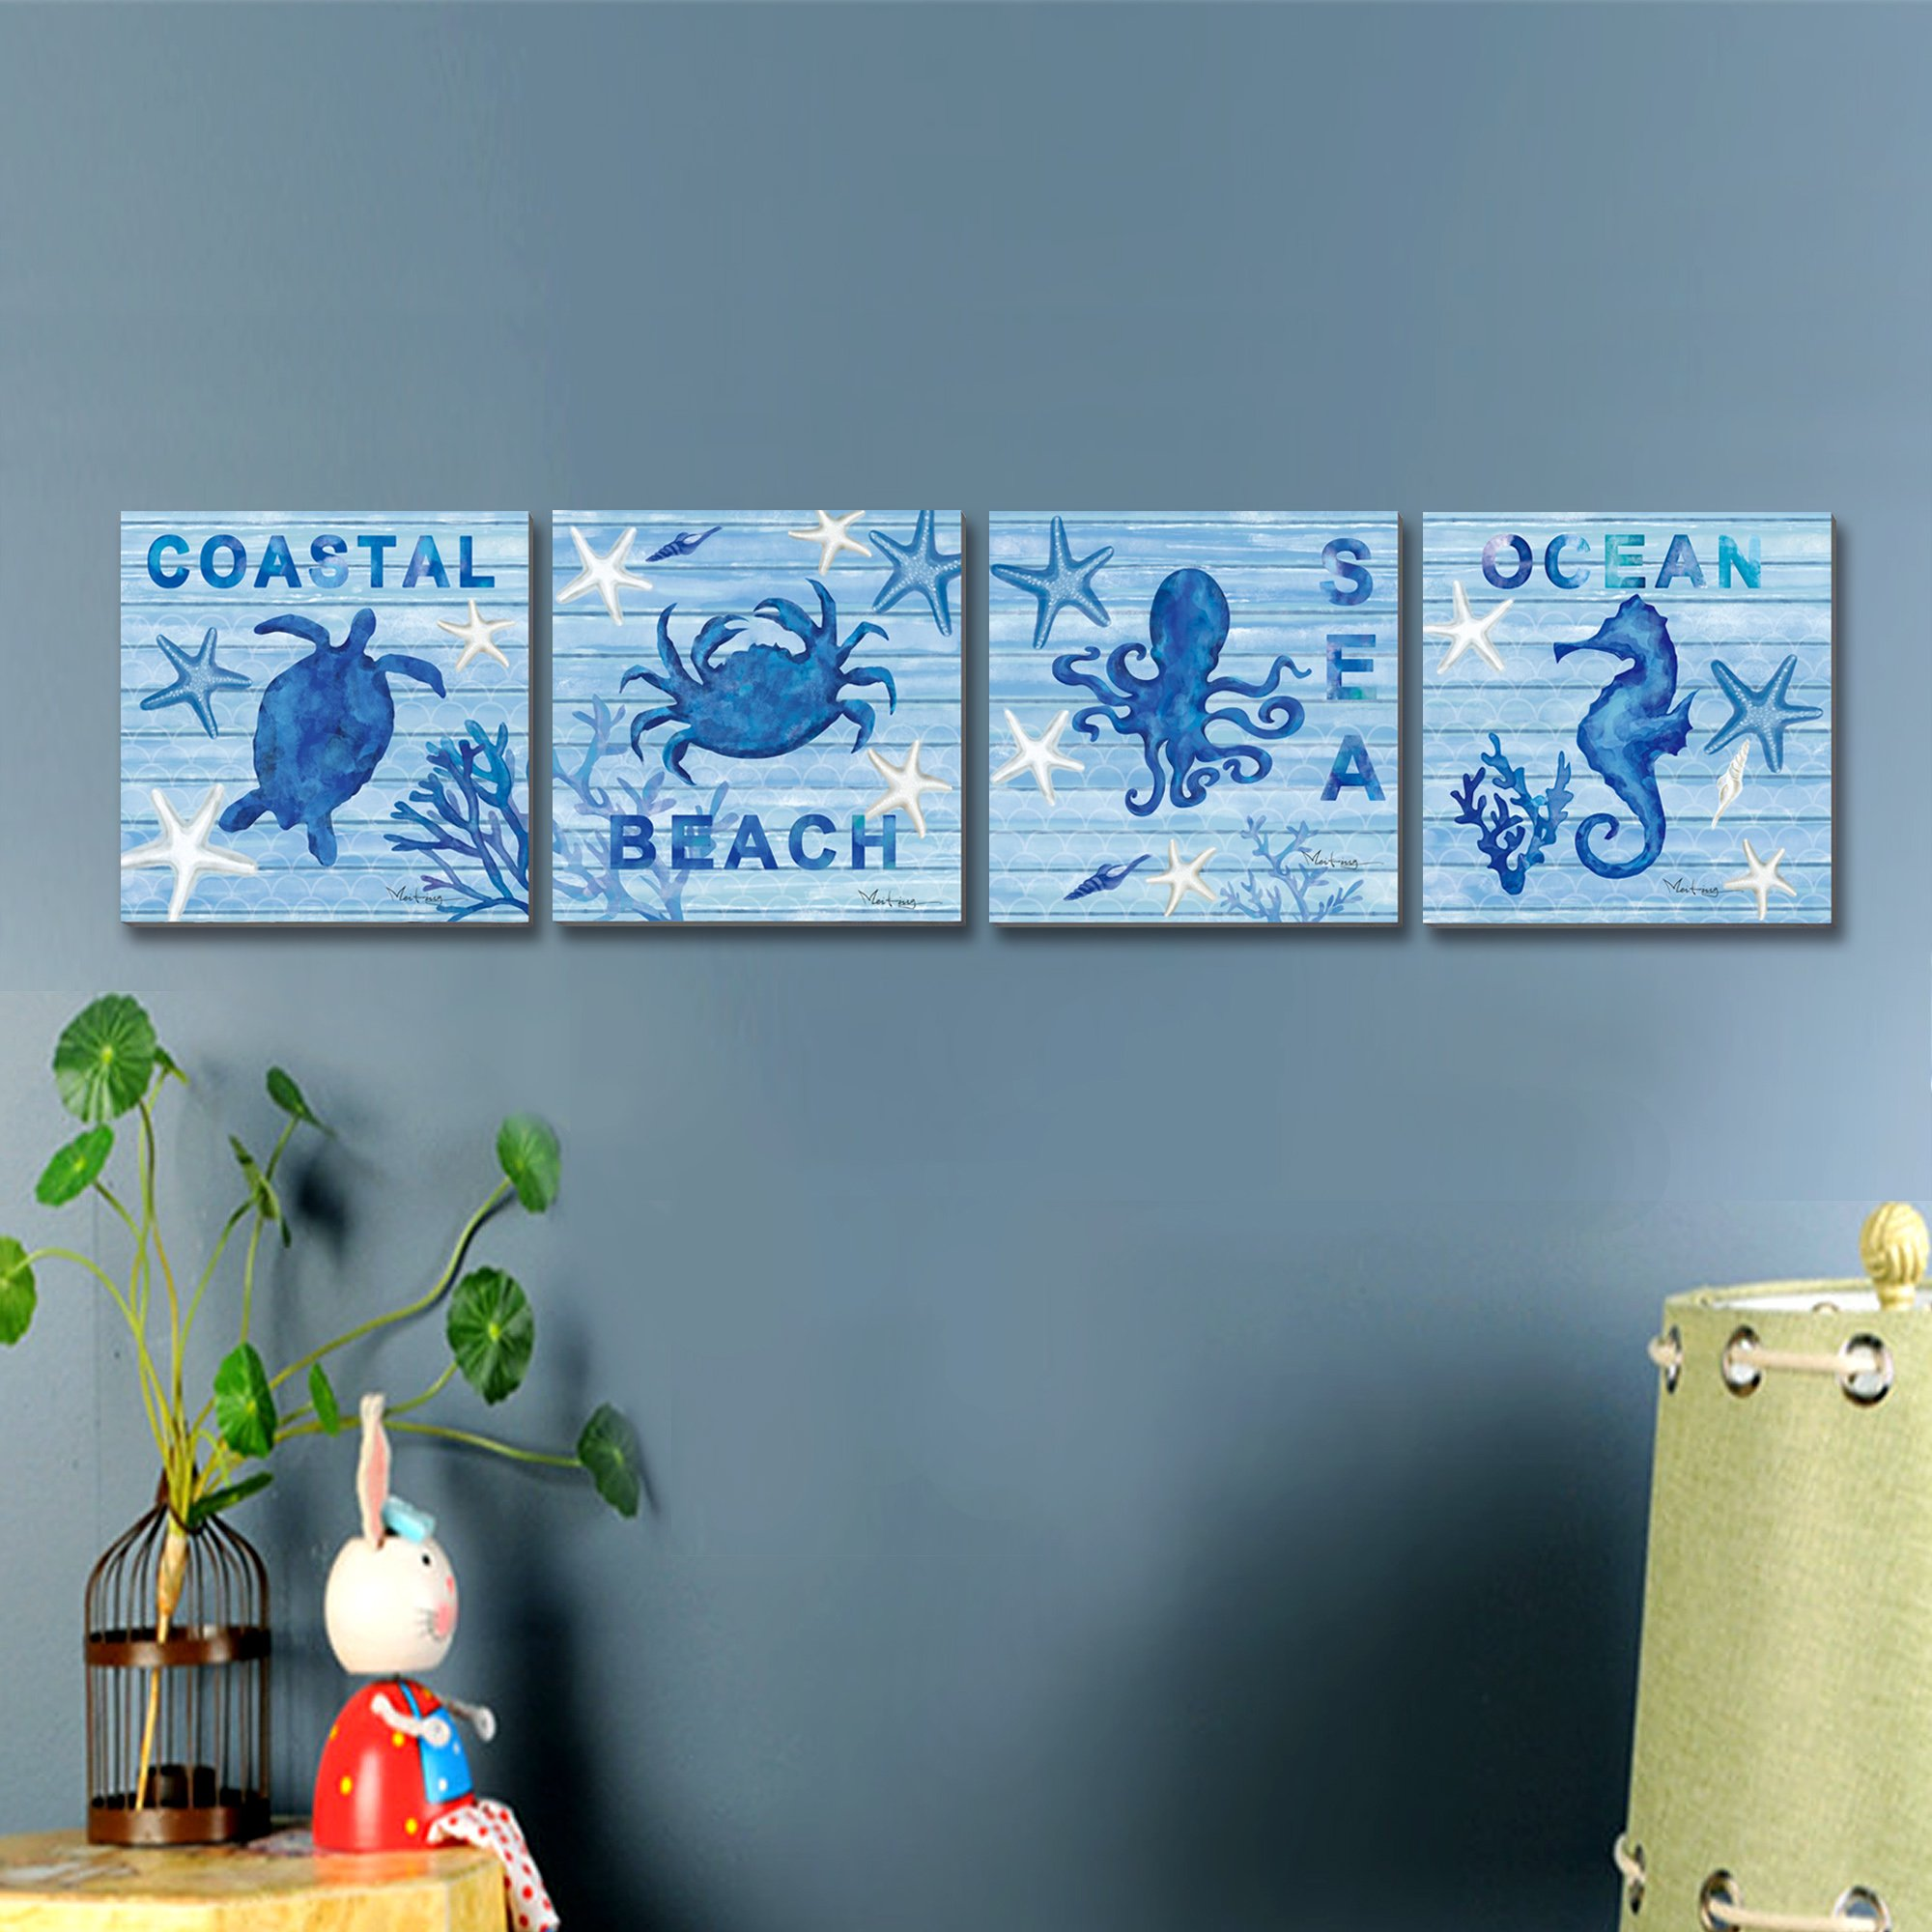 3Hdeko Blue Sea Wall Art Painting Turtle Hippocampus Octopus Crab ...